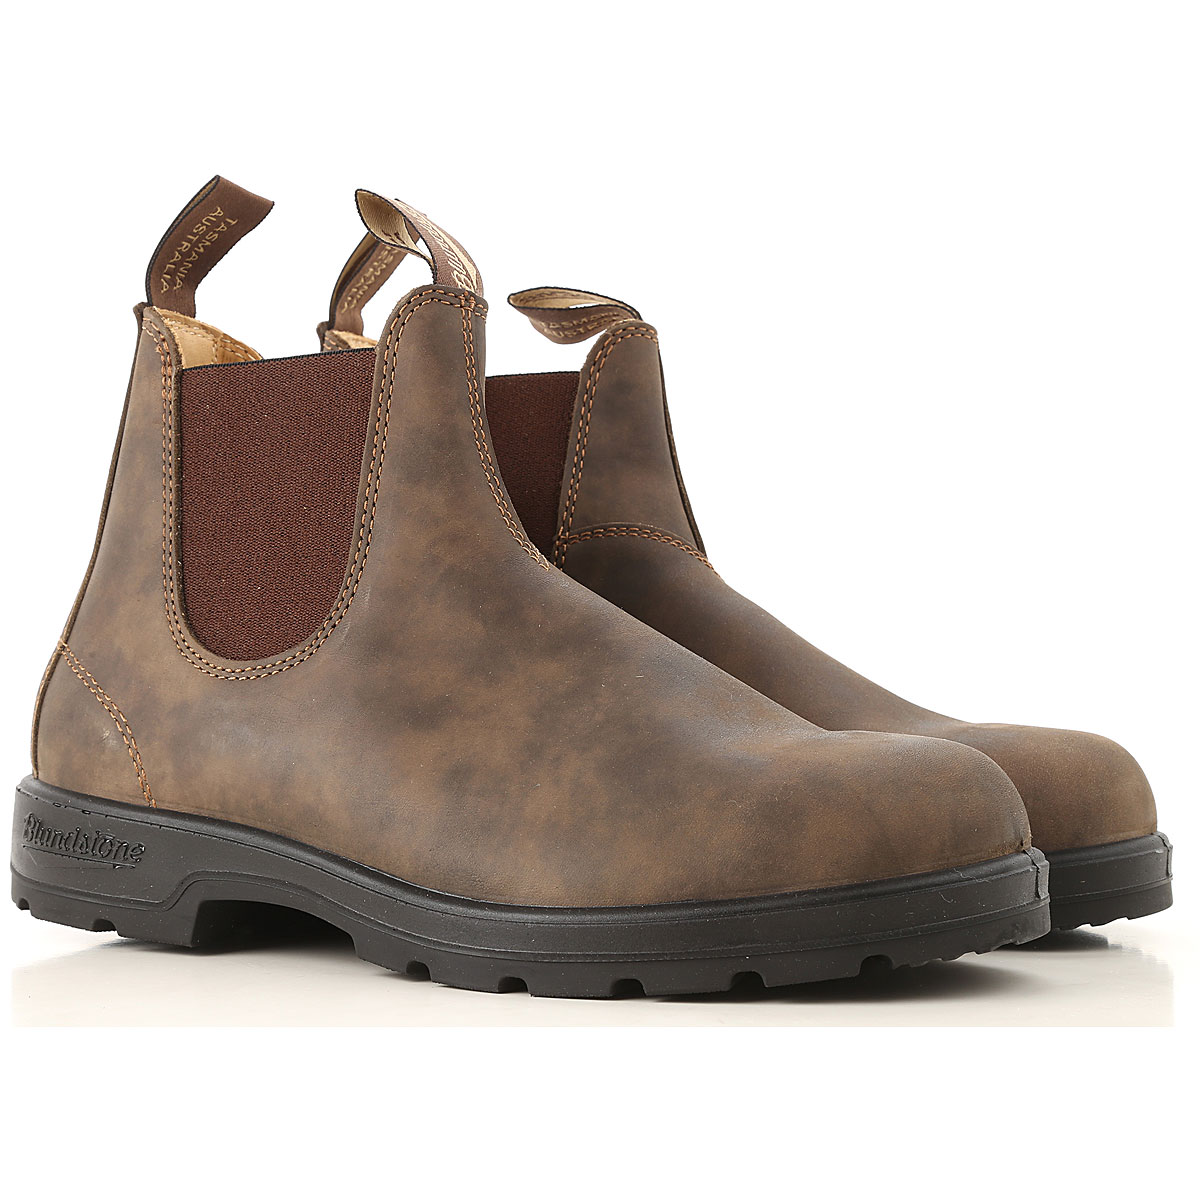 Blundstone Boots for Men, Booties On Sale in Outlet, Brown, Leather, 2019, 12 9.5